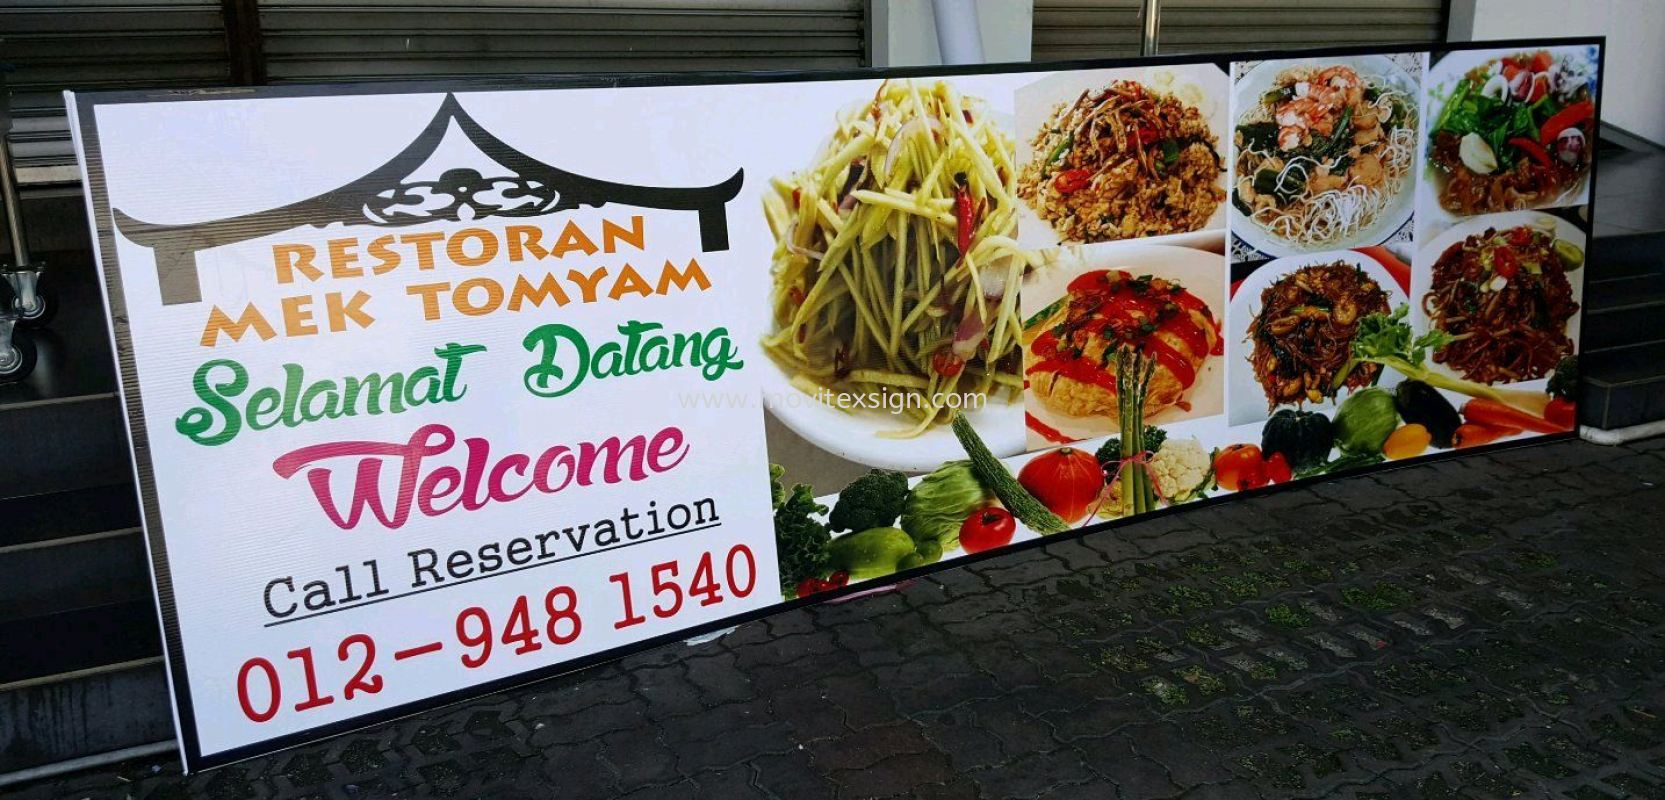 restoran wallstick backdrop posters for food n drinks advertising 3D Wall stickers /wallpaper or Digital graphics Uv print vinyl Johor Bahru (JB), Johor, Malaysia. Design, Supplier, Manufacturers, Suppliers | M-Movitexsign Advertising Art & Print Sdn Bhd